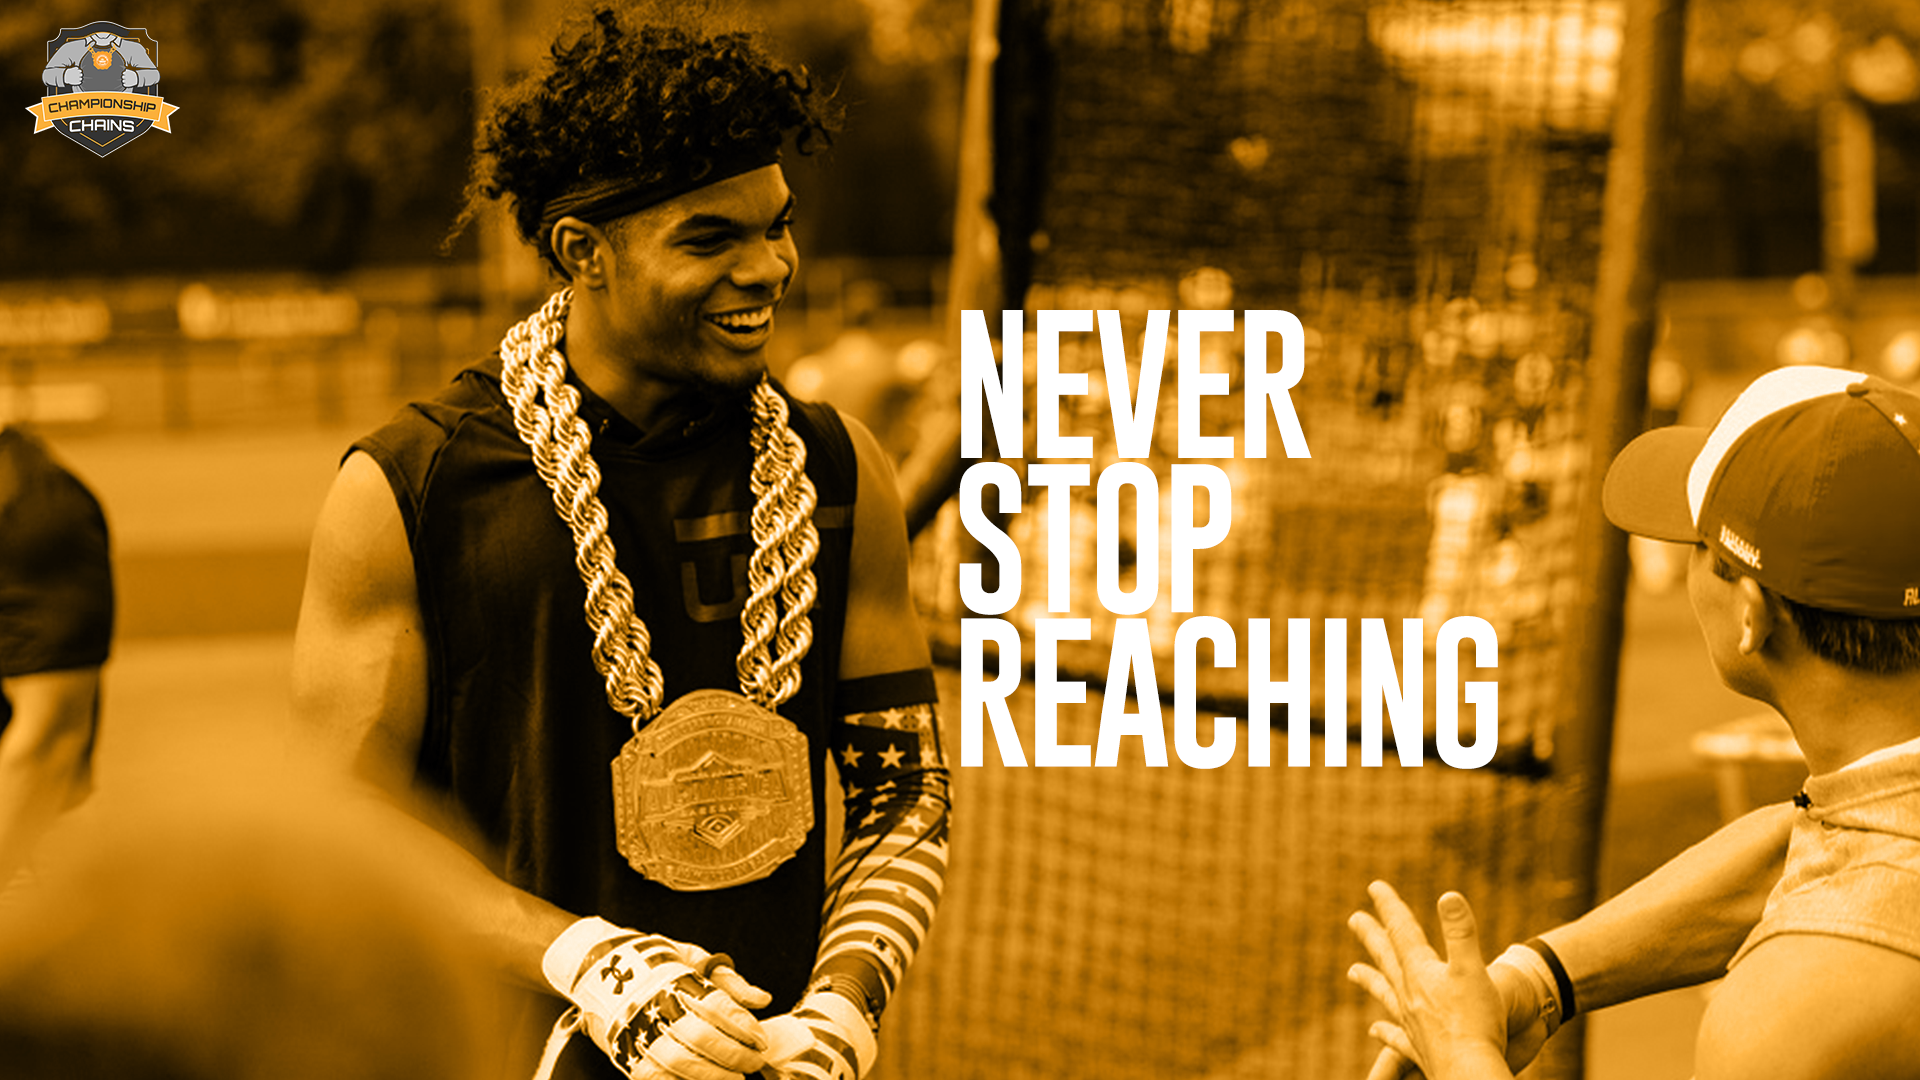 Never Stop Reaching